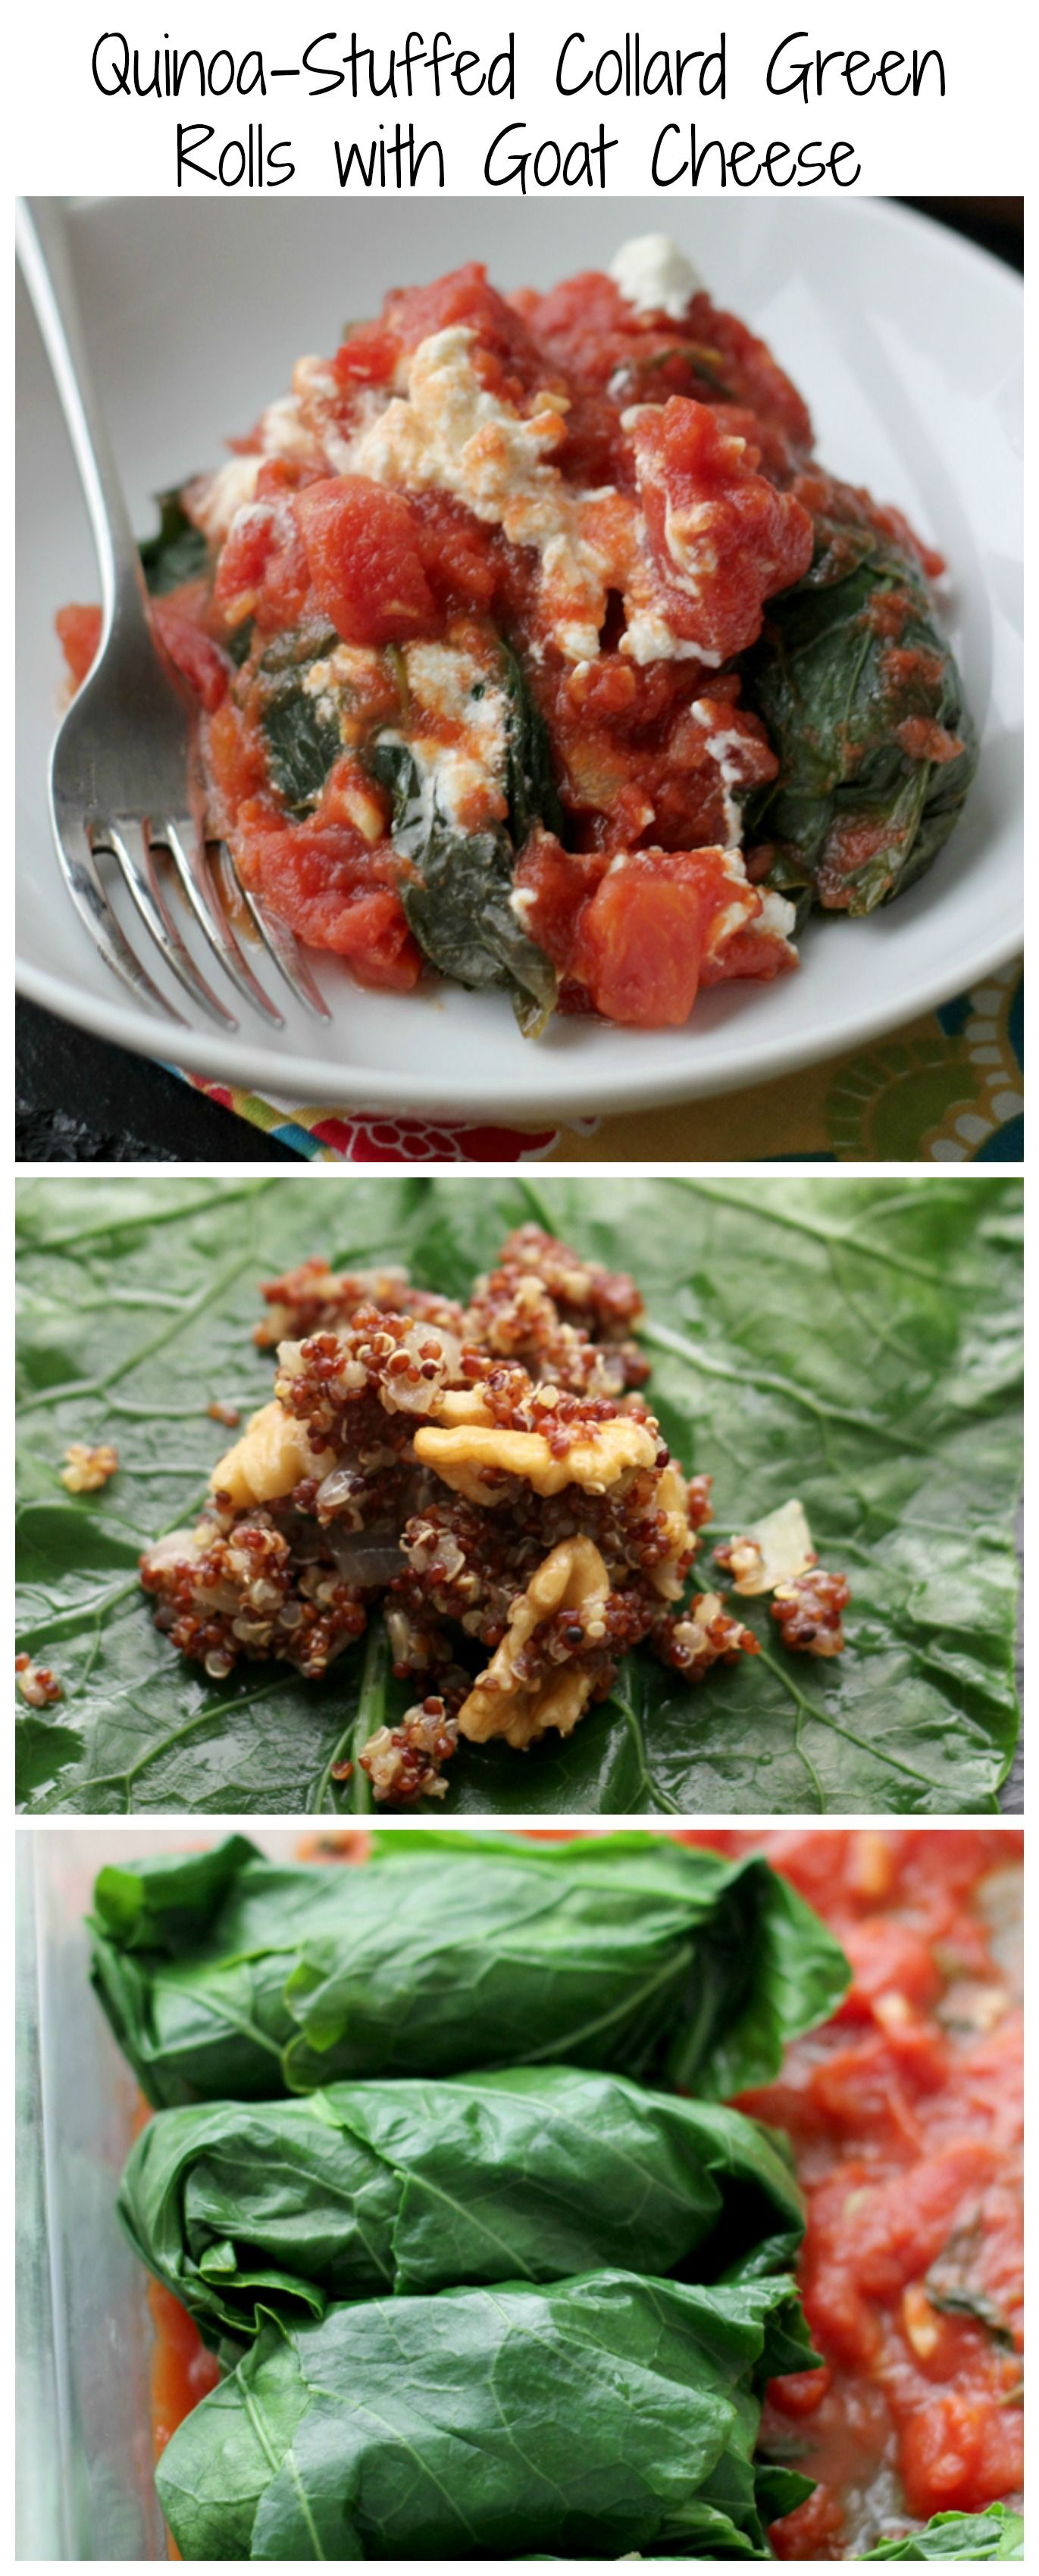 Quinoa Stuffed Collard Green Rolls With Goat Cheese